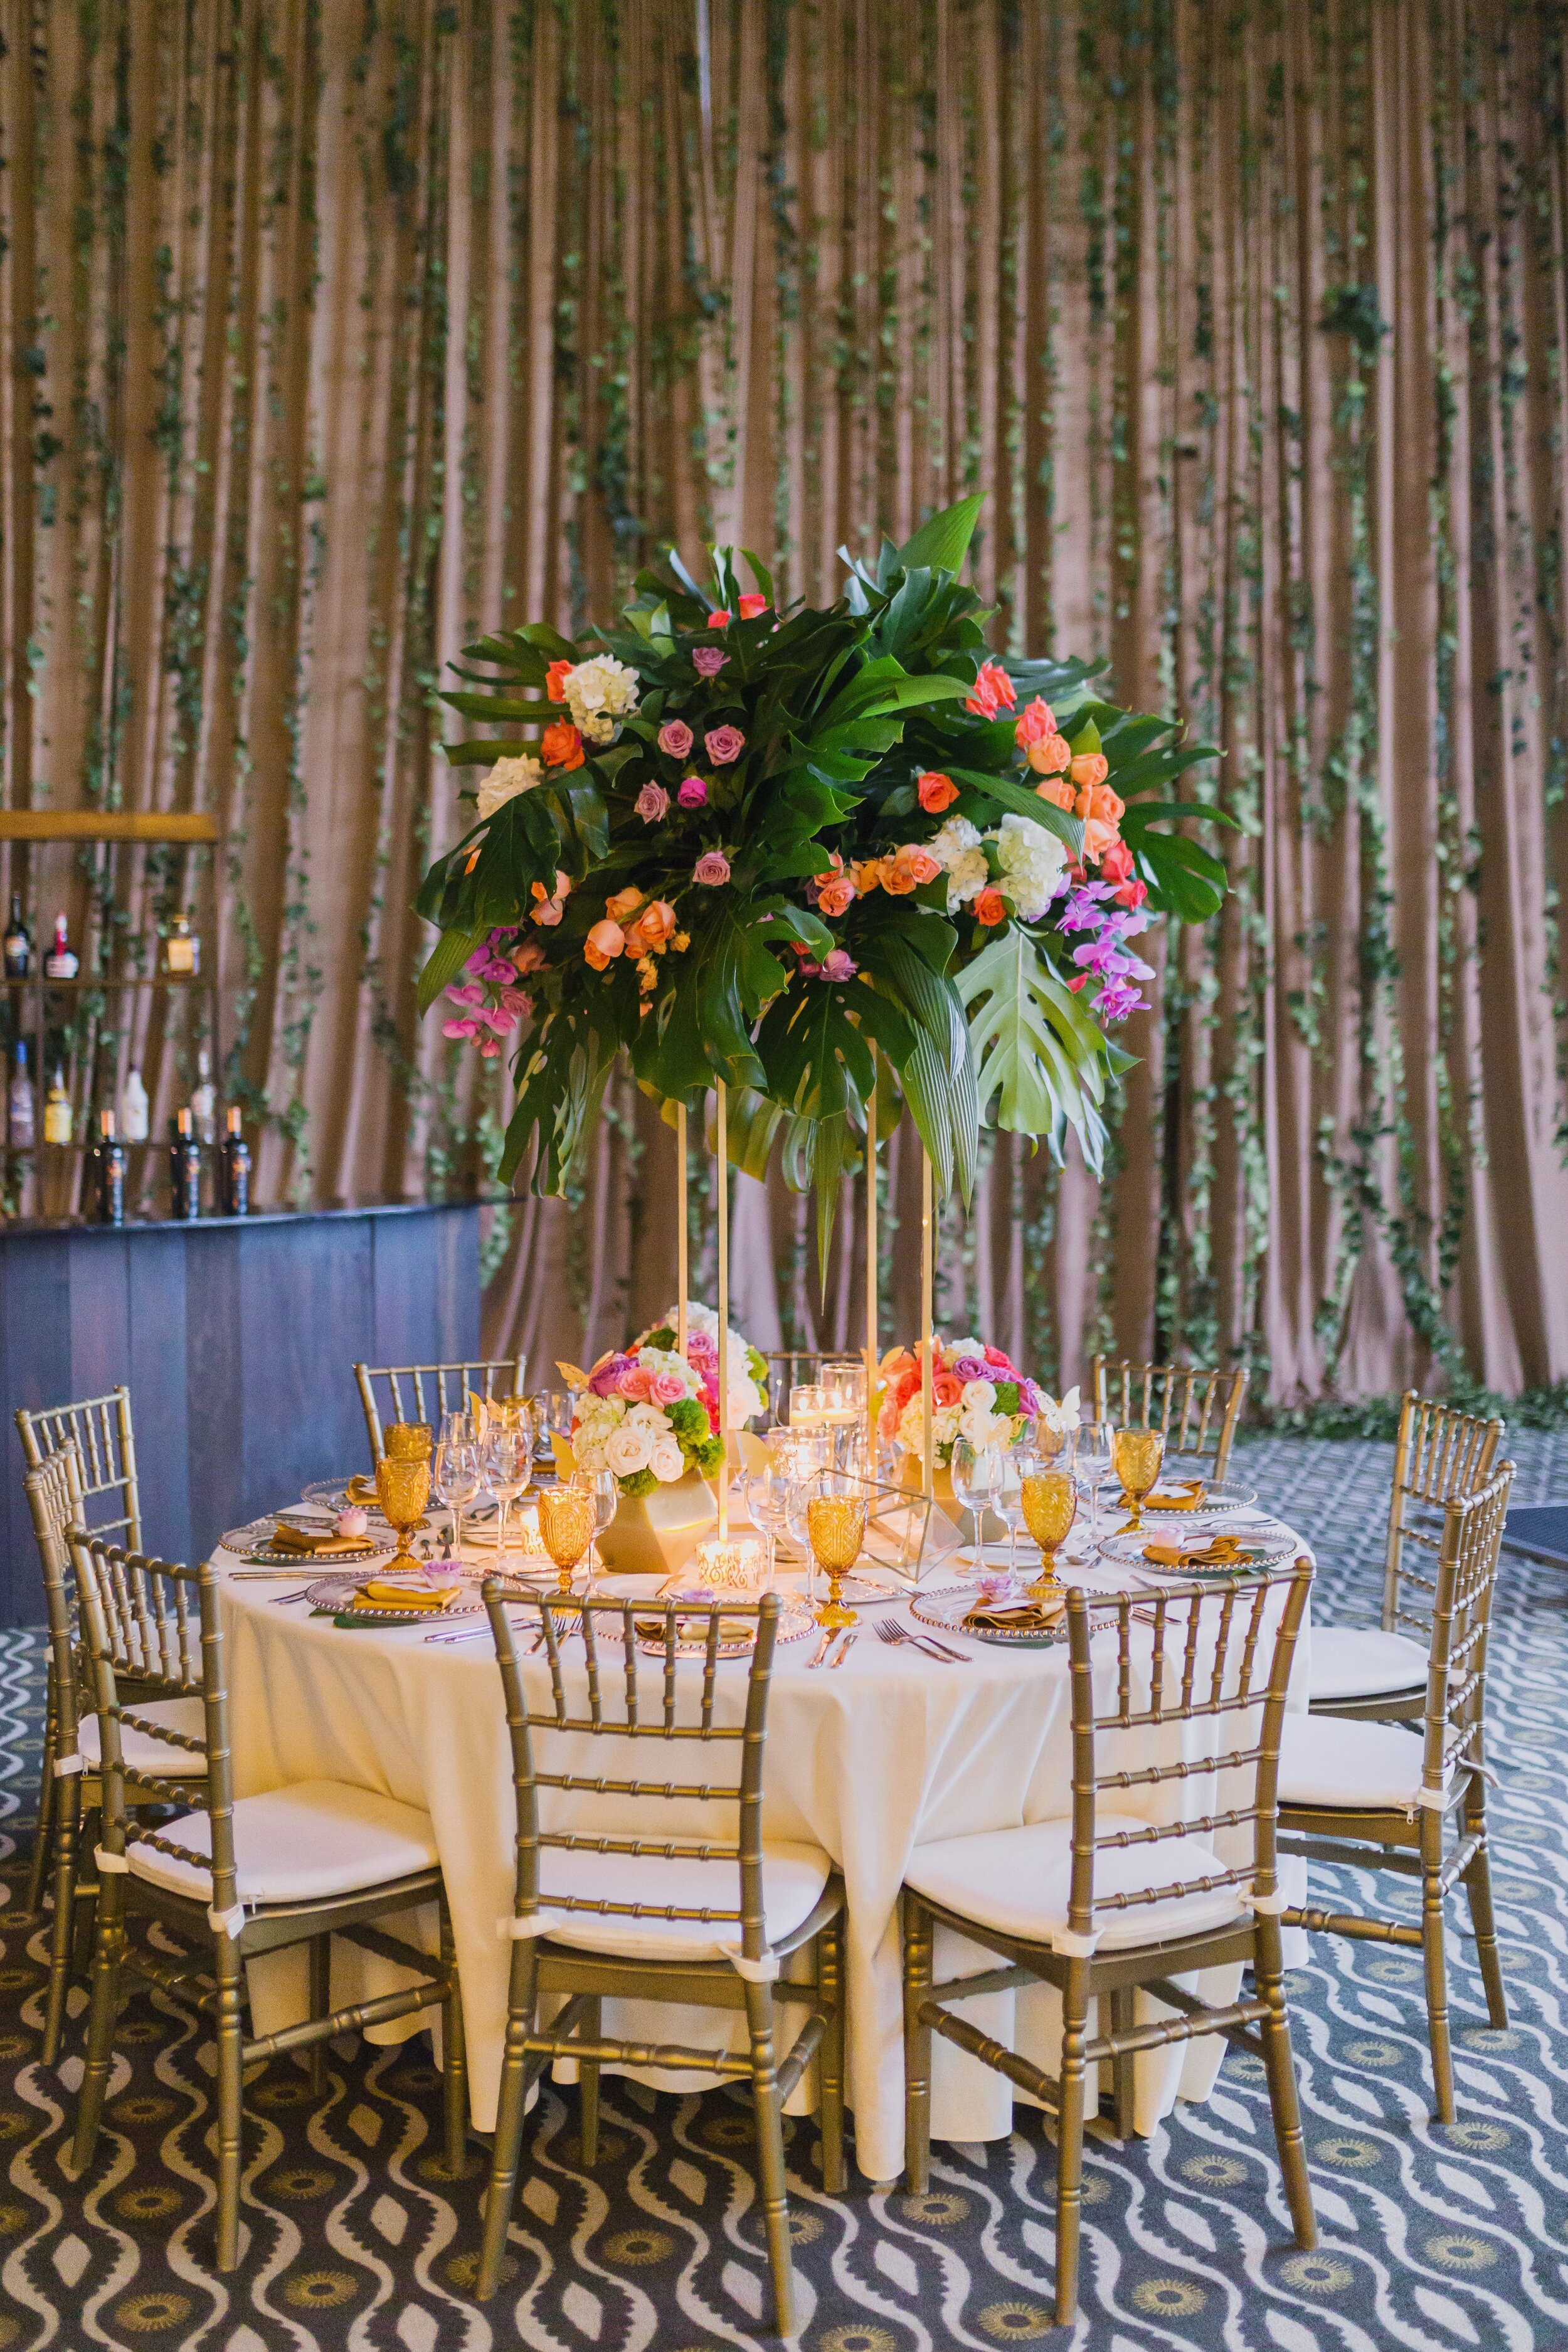 summer wedding decor at destination beach wedding in cancun mexico